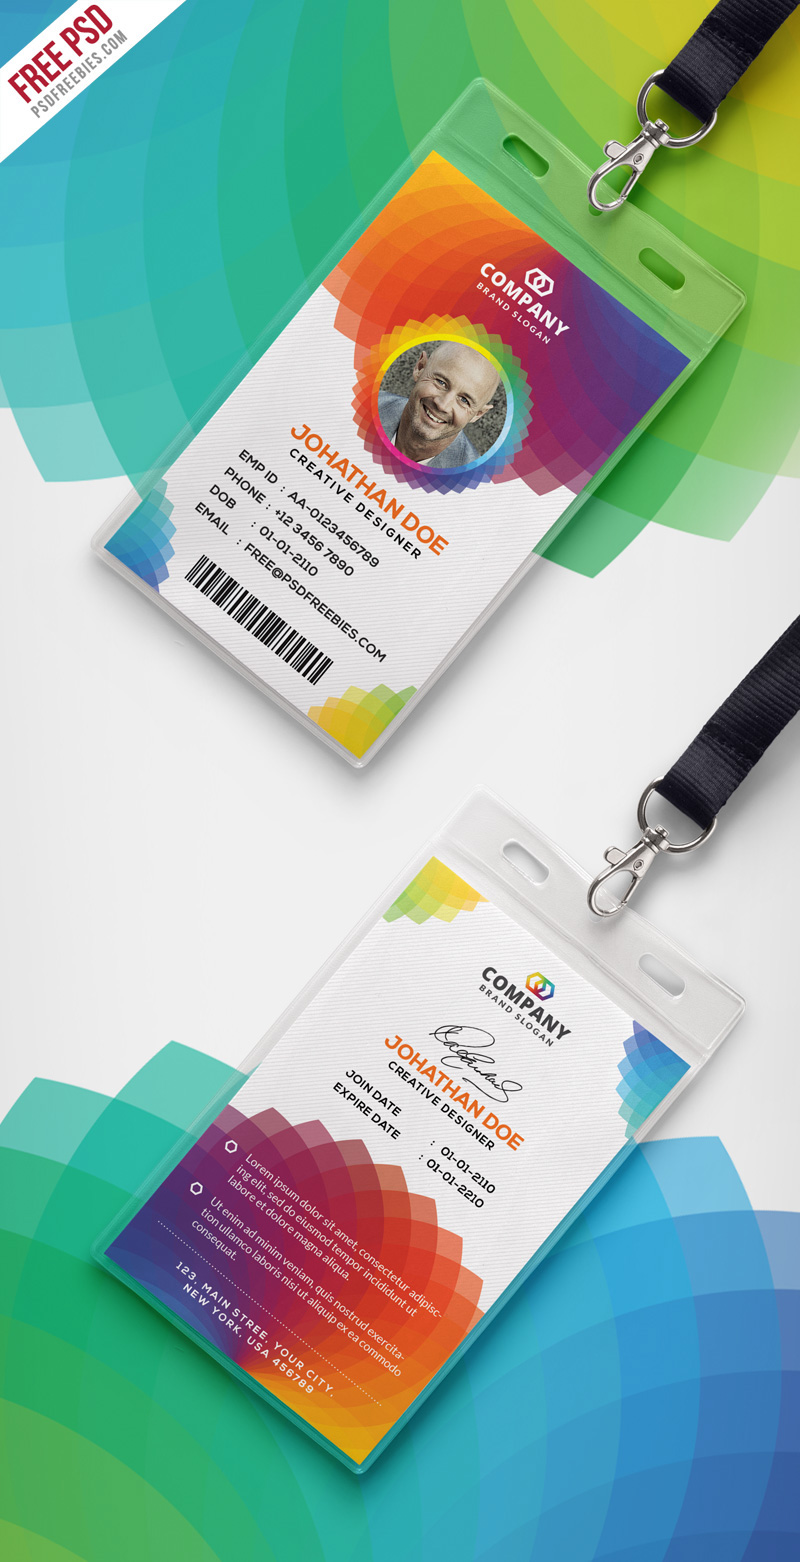 hight resolution of download free corporate branding identity card free psd this free corporate office id card psd template a designed for any types of companies and offices